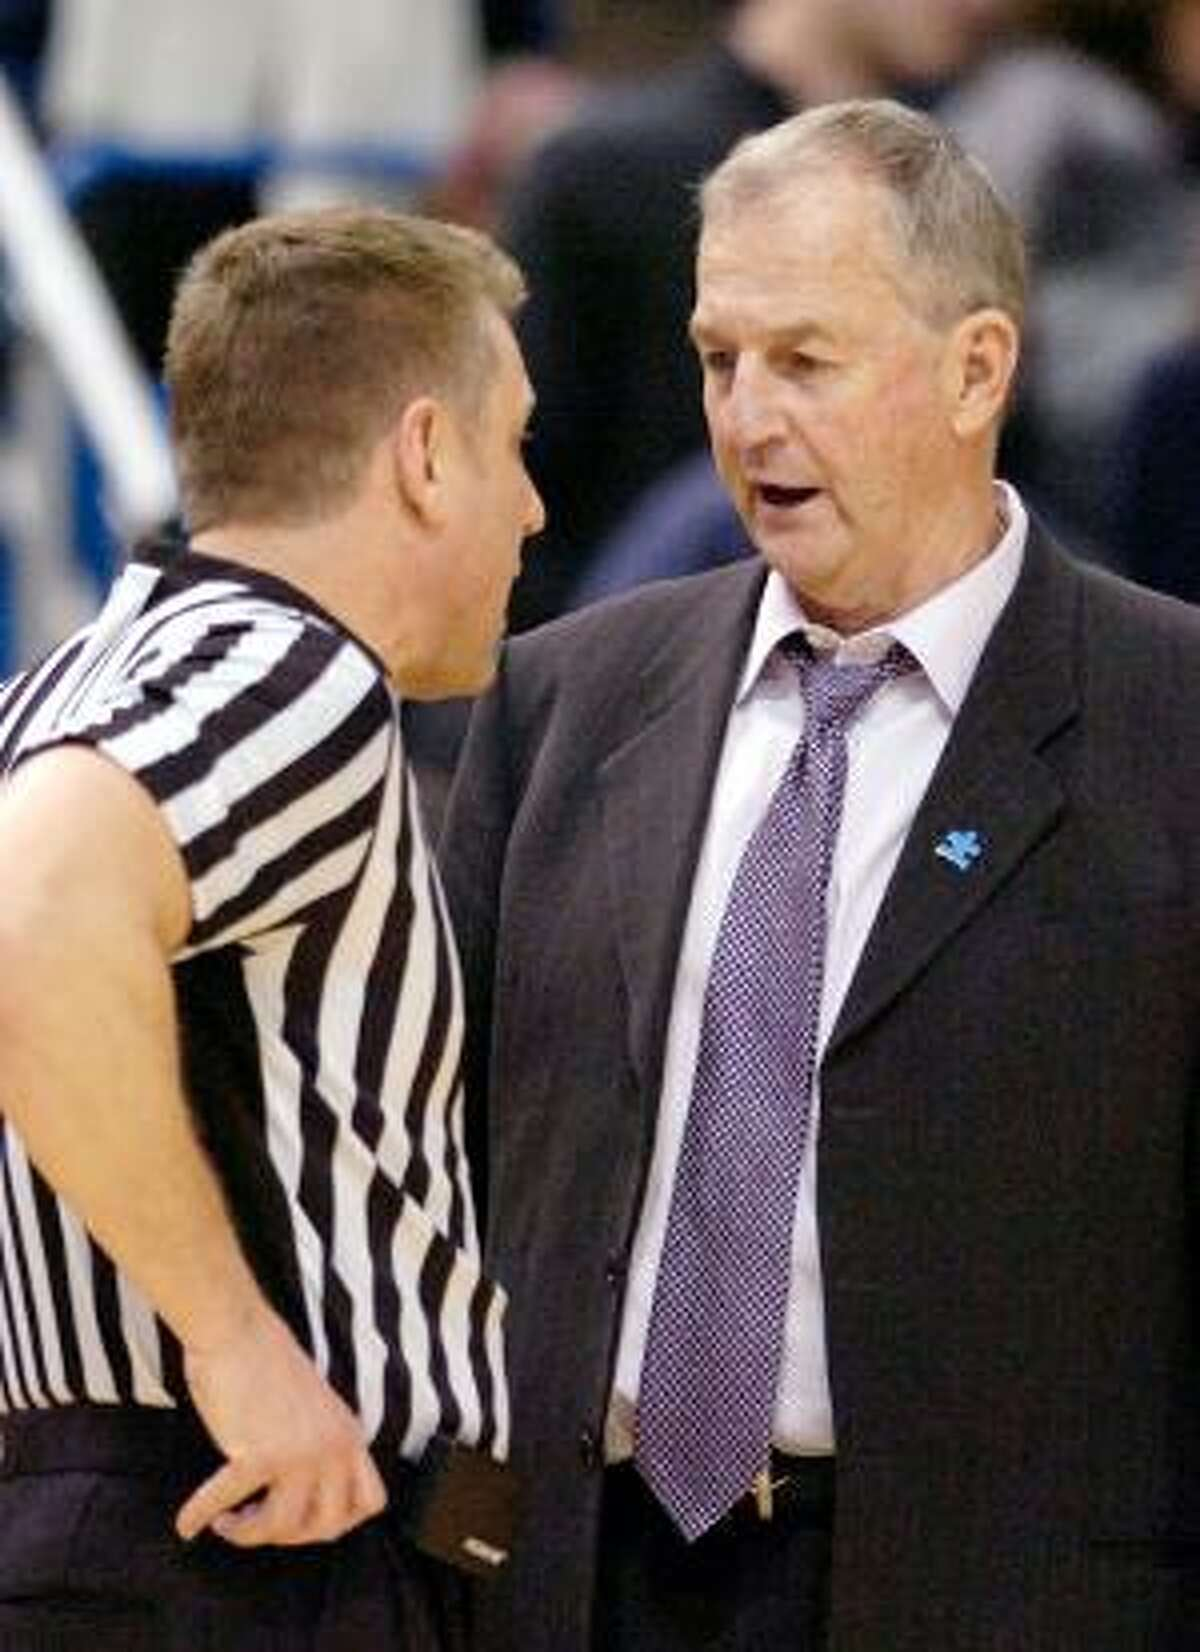 AP Connecticut coach Jim Calhoun speaks with an official during the first half of his team's 78-70 victory over Georgetown on Feb. 16 in Hartford. Calhoun released a statement Friday responding to the NCAA's findings and said